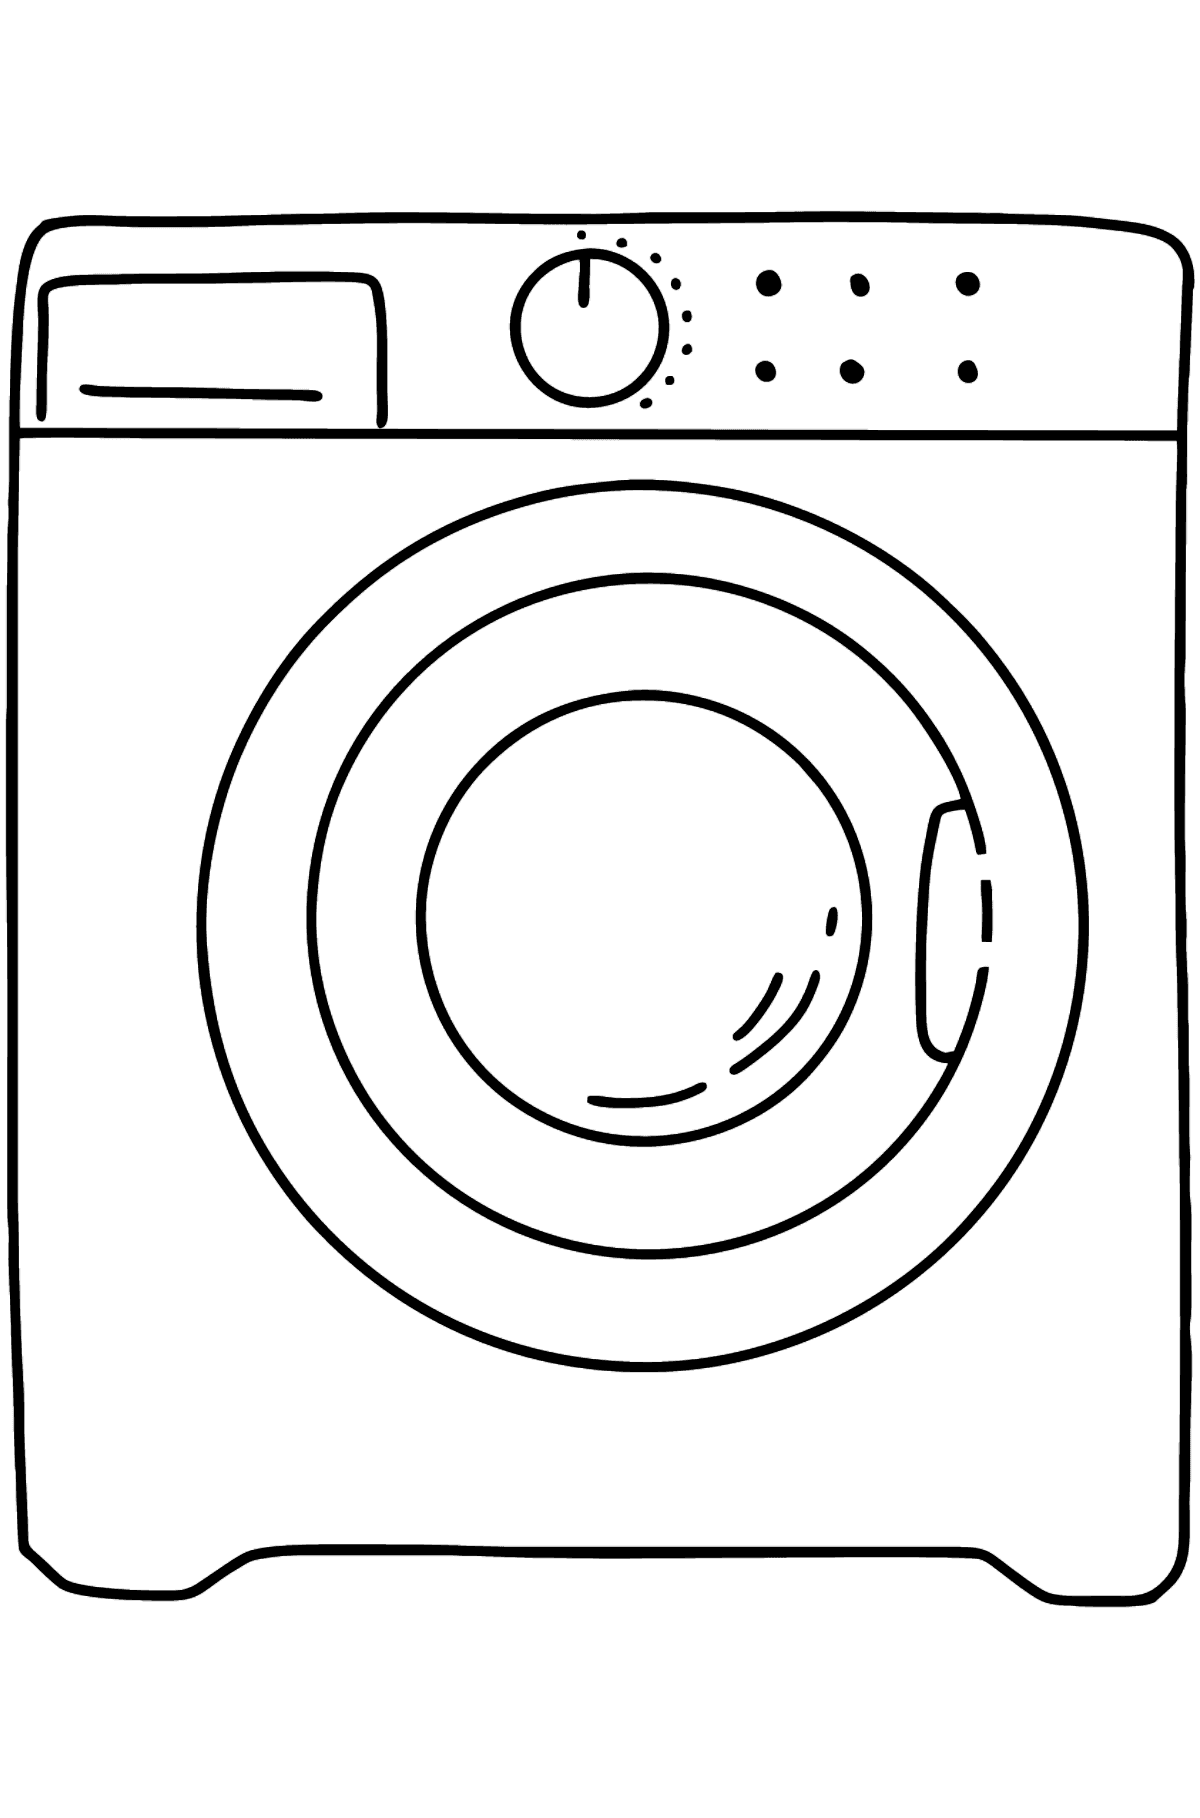 Dishwashe coloring page - Coloring Pages for Kids